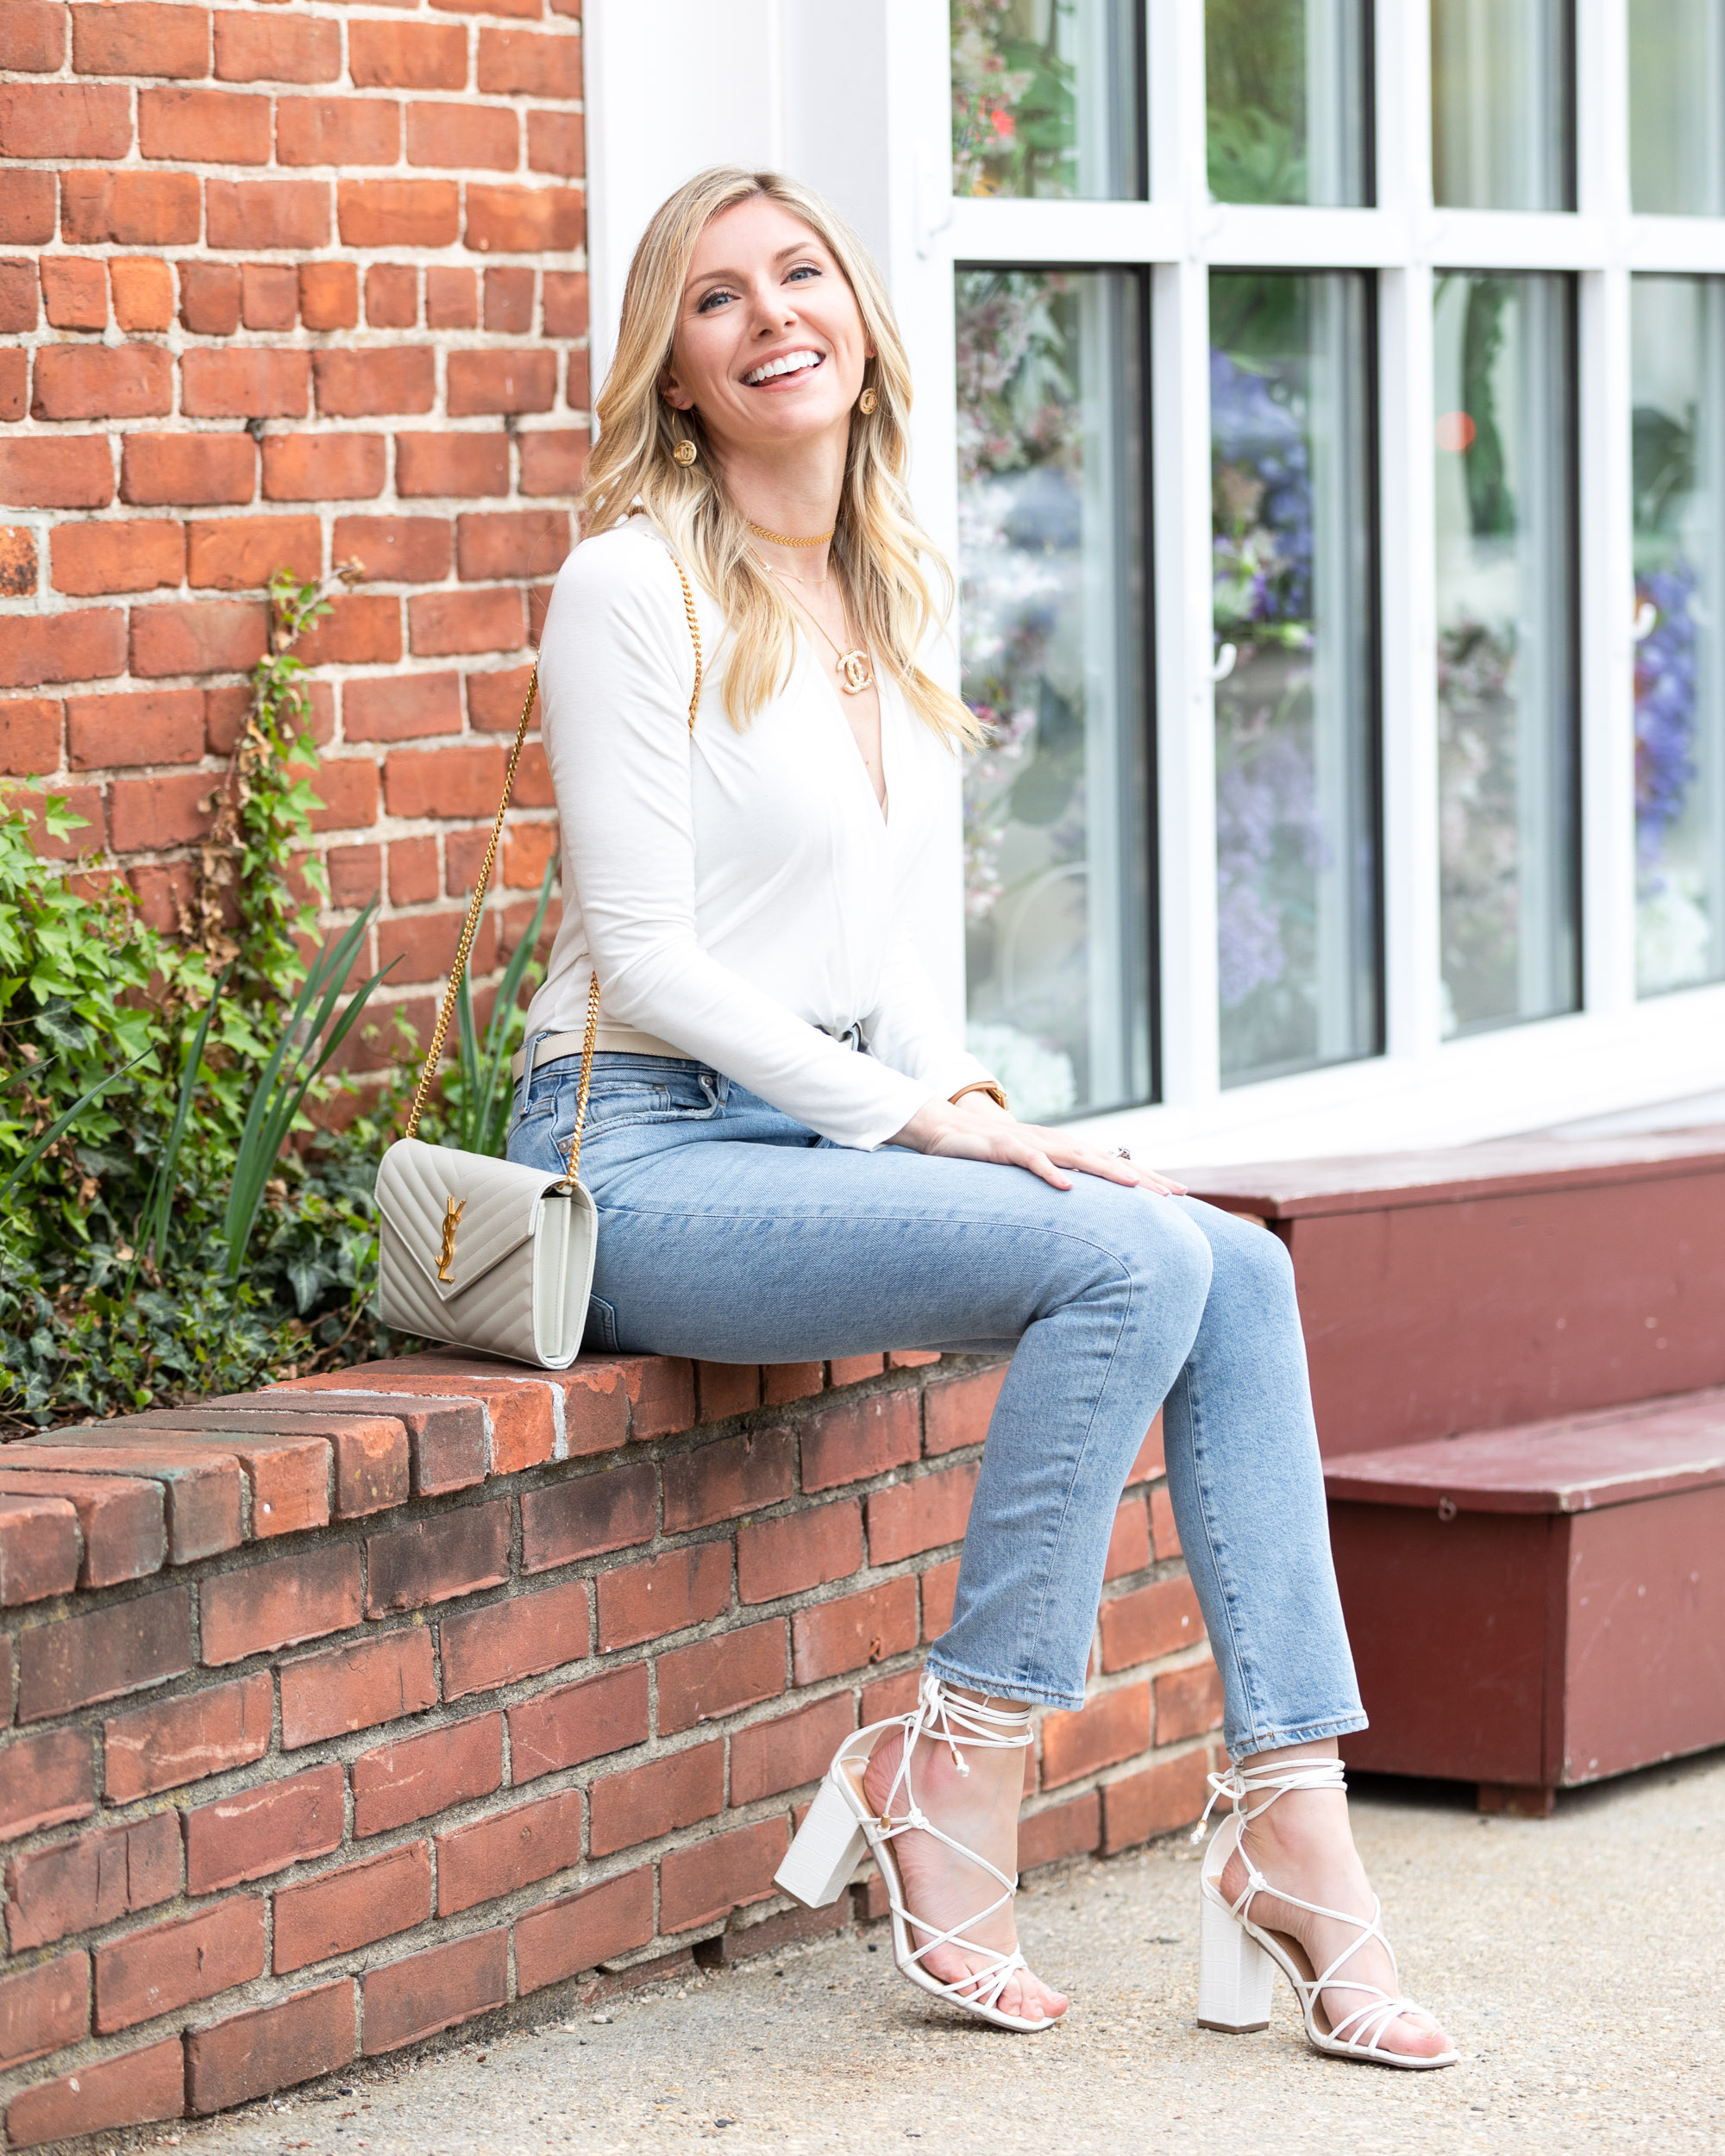 chic-spring-look-with-white-block-heels-the-glamorous-gal